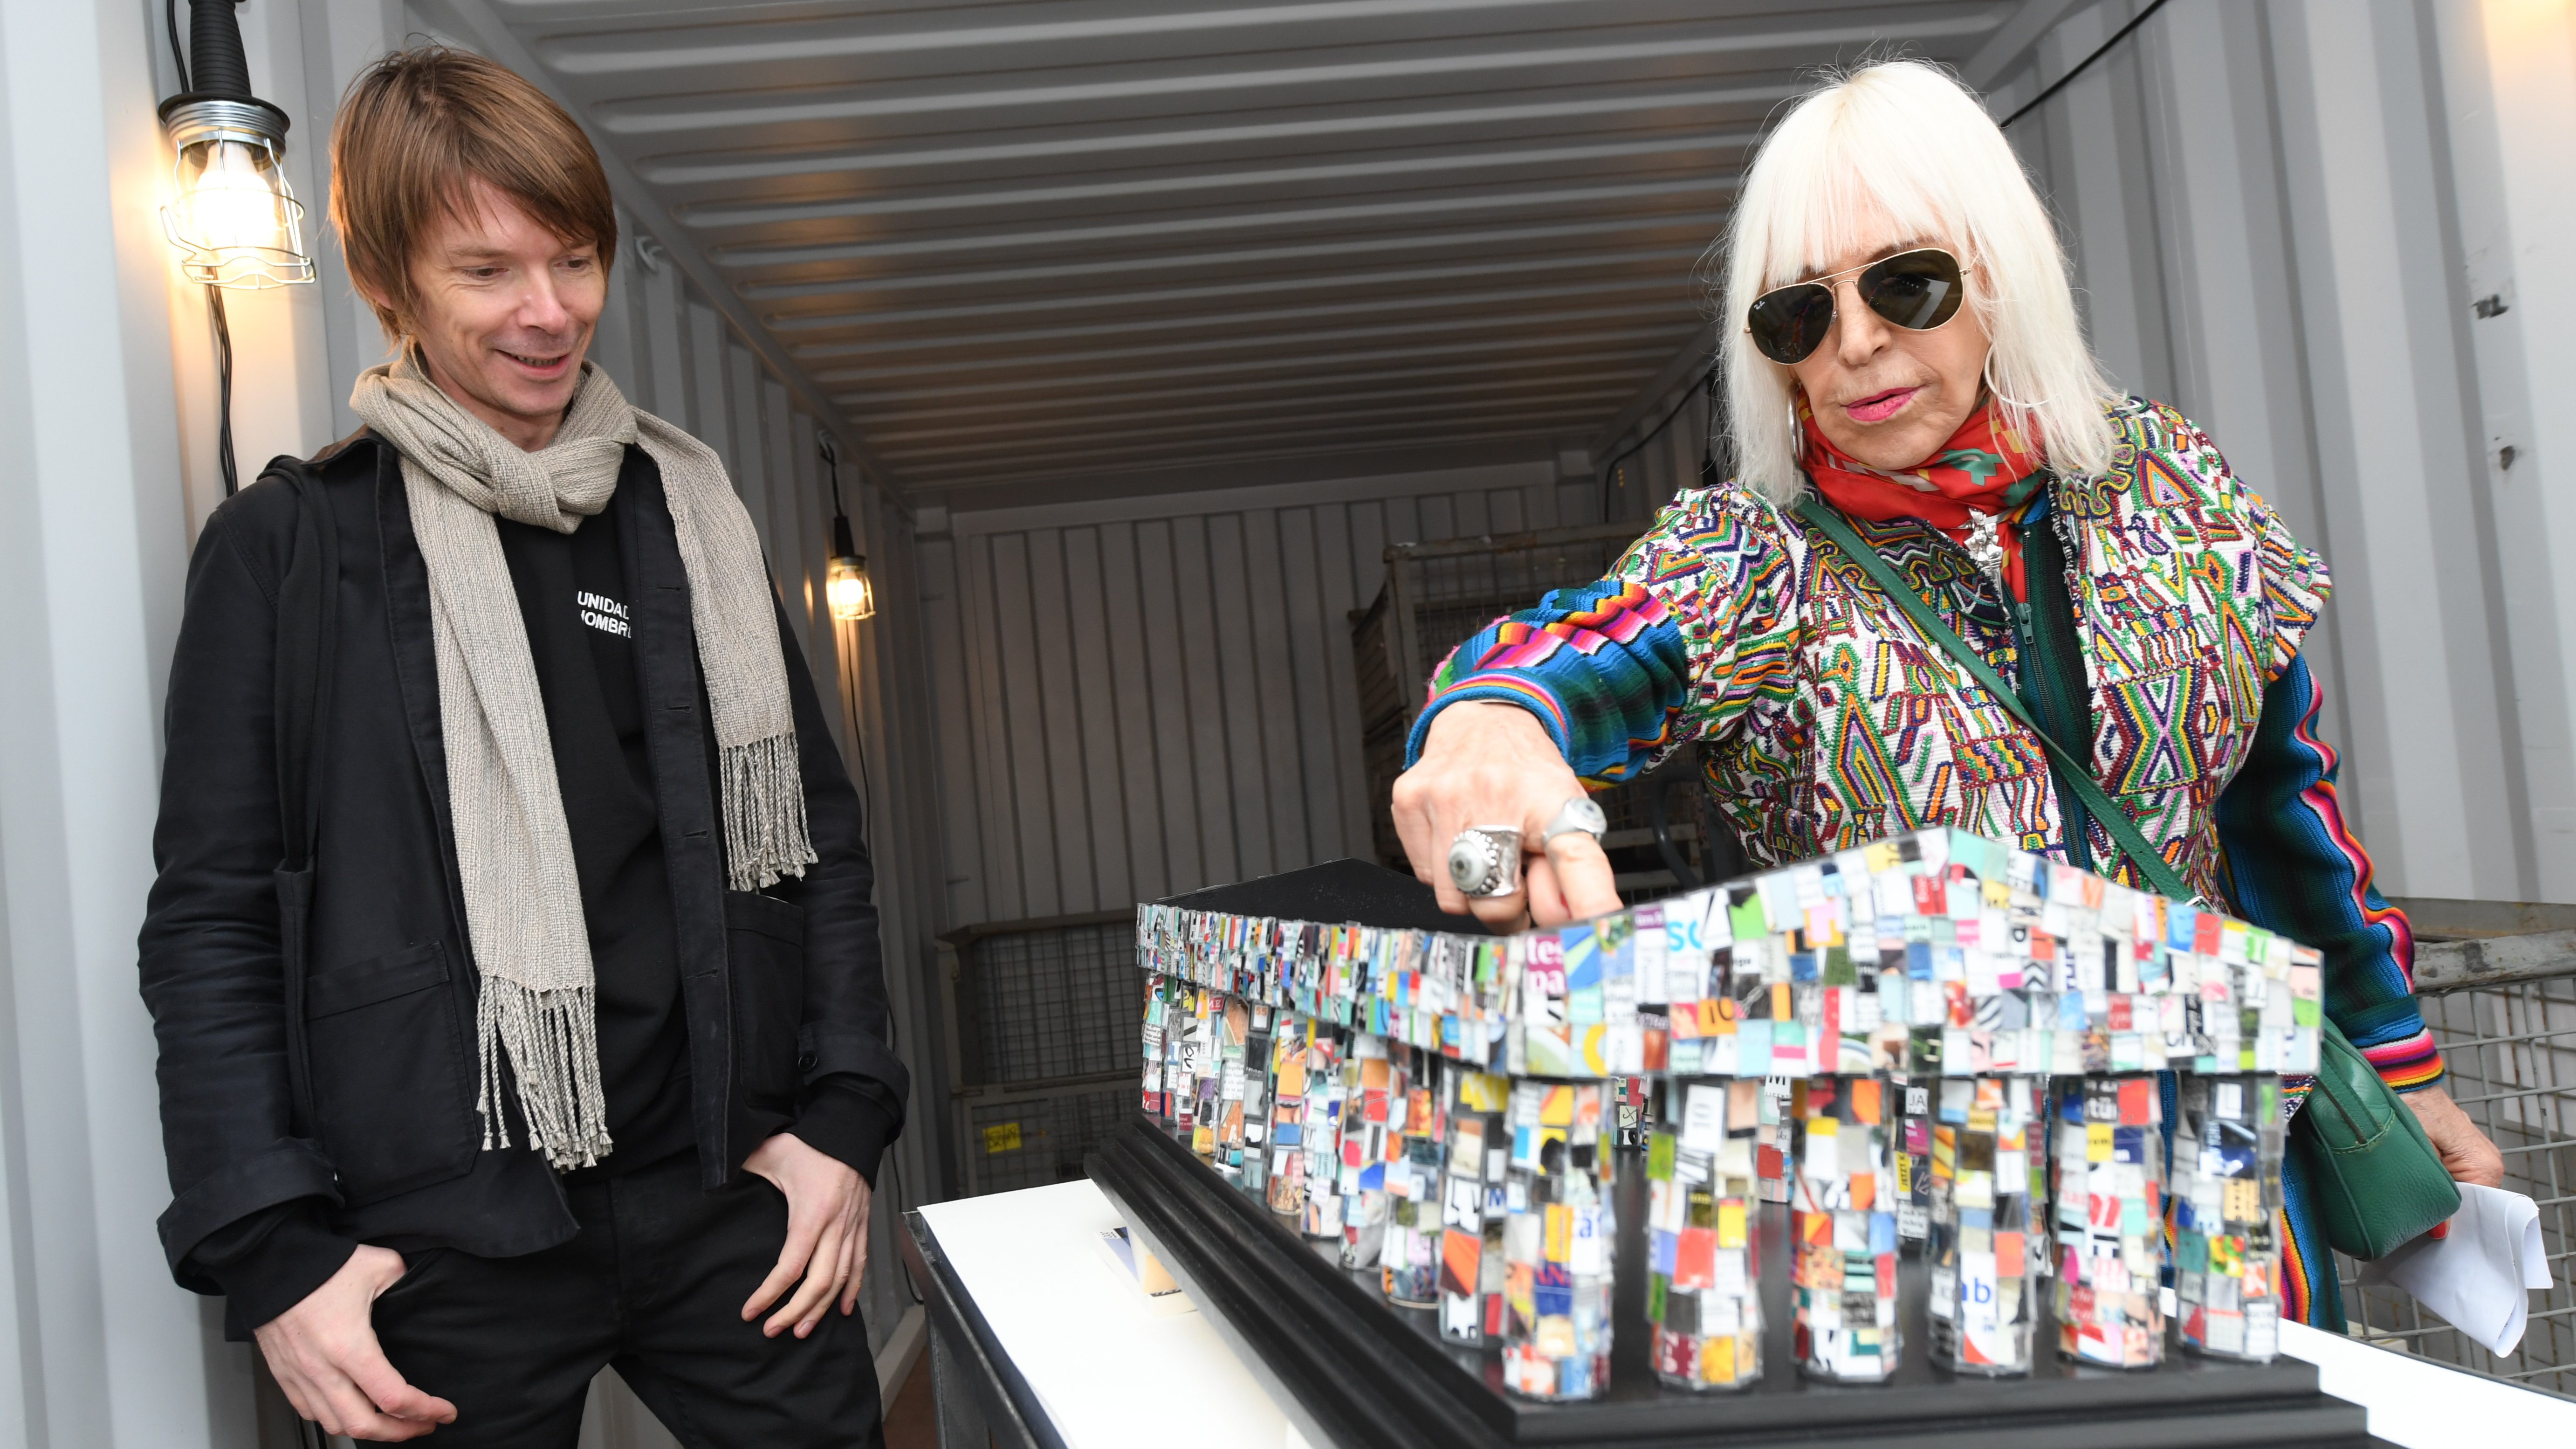 epa05594062 Argentinian artist Marta Minujin (R) and Poilsh art director of the documenta 14 fair, Adam Szymczyk stand in front of her installation 'The Parthenon of Books'at the Frankfurt Book Fair, in Frankfurt am Main, Germany, 20 October 2016. During the book fair, formerly forbidden and now republished books are gathered for an installation of Minujin, which will be presented at the documenta 14 art fair in Kassel, Germany on 10 June 2017. The book fair is the largest in the world and will run from 19 to 23 October.  EPA/ARNE DEDERT